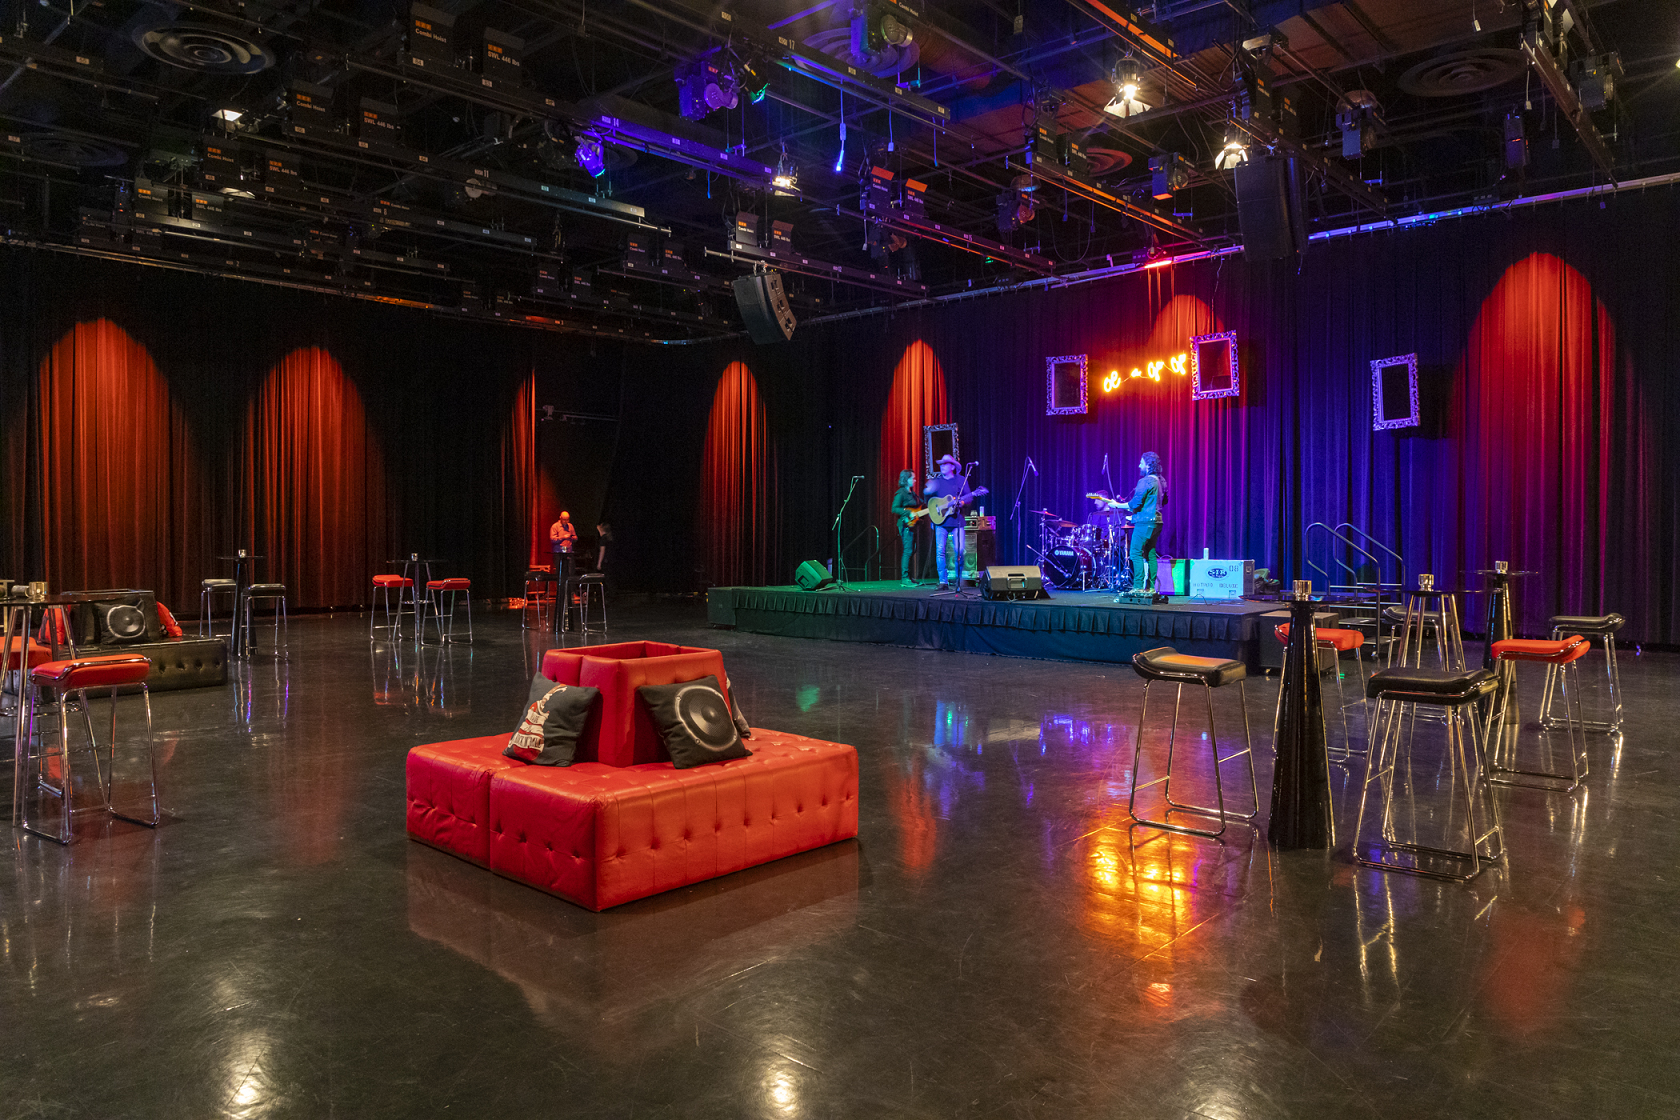 A Studio space is set up with red and black furniture  and accent decor to emulate the famous Whiskey-a-Go-Go Bar